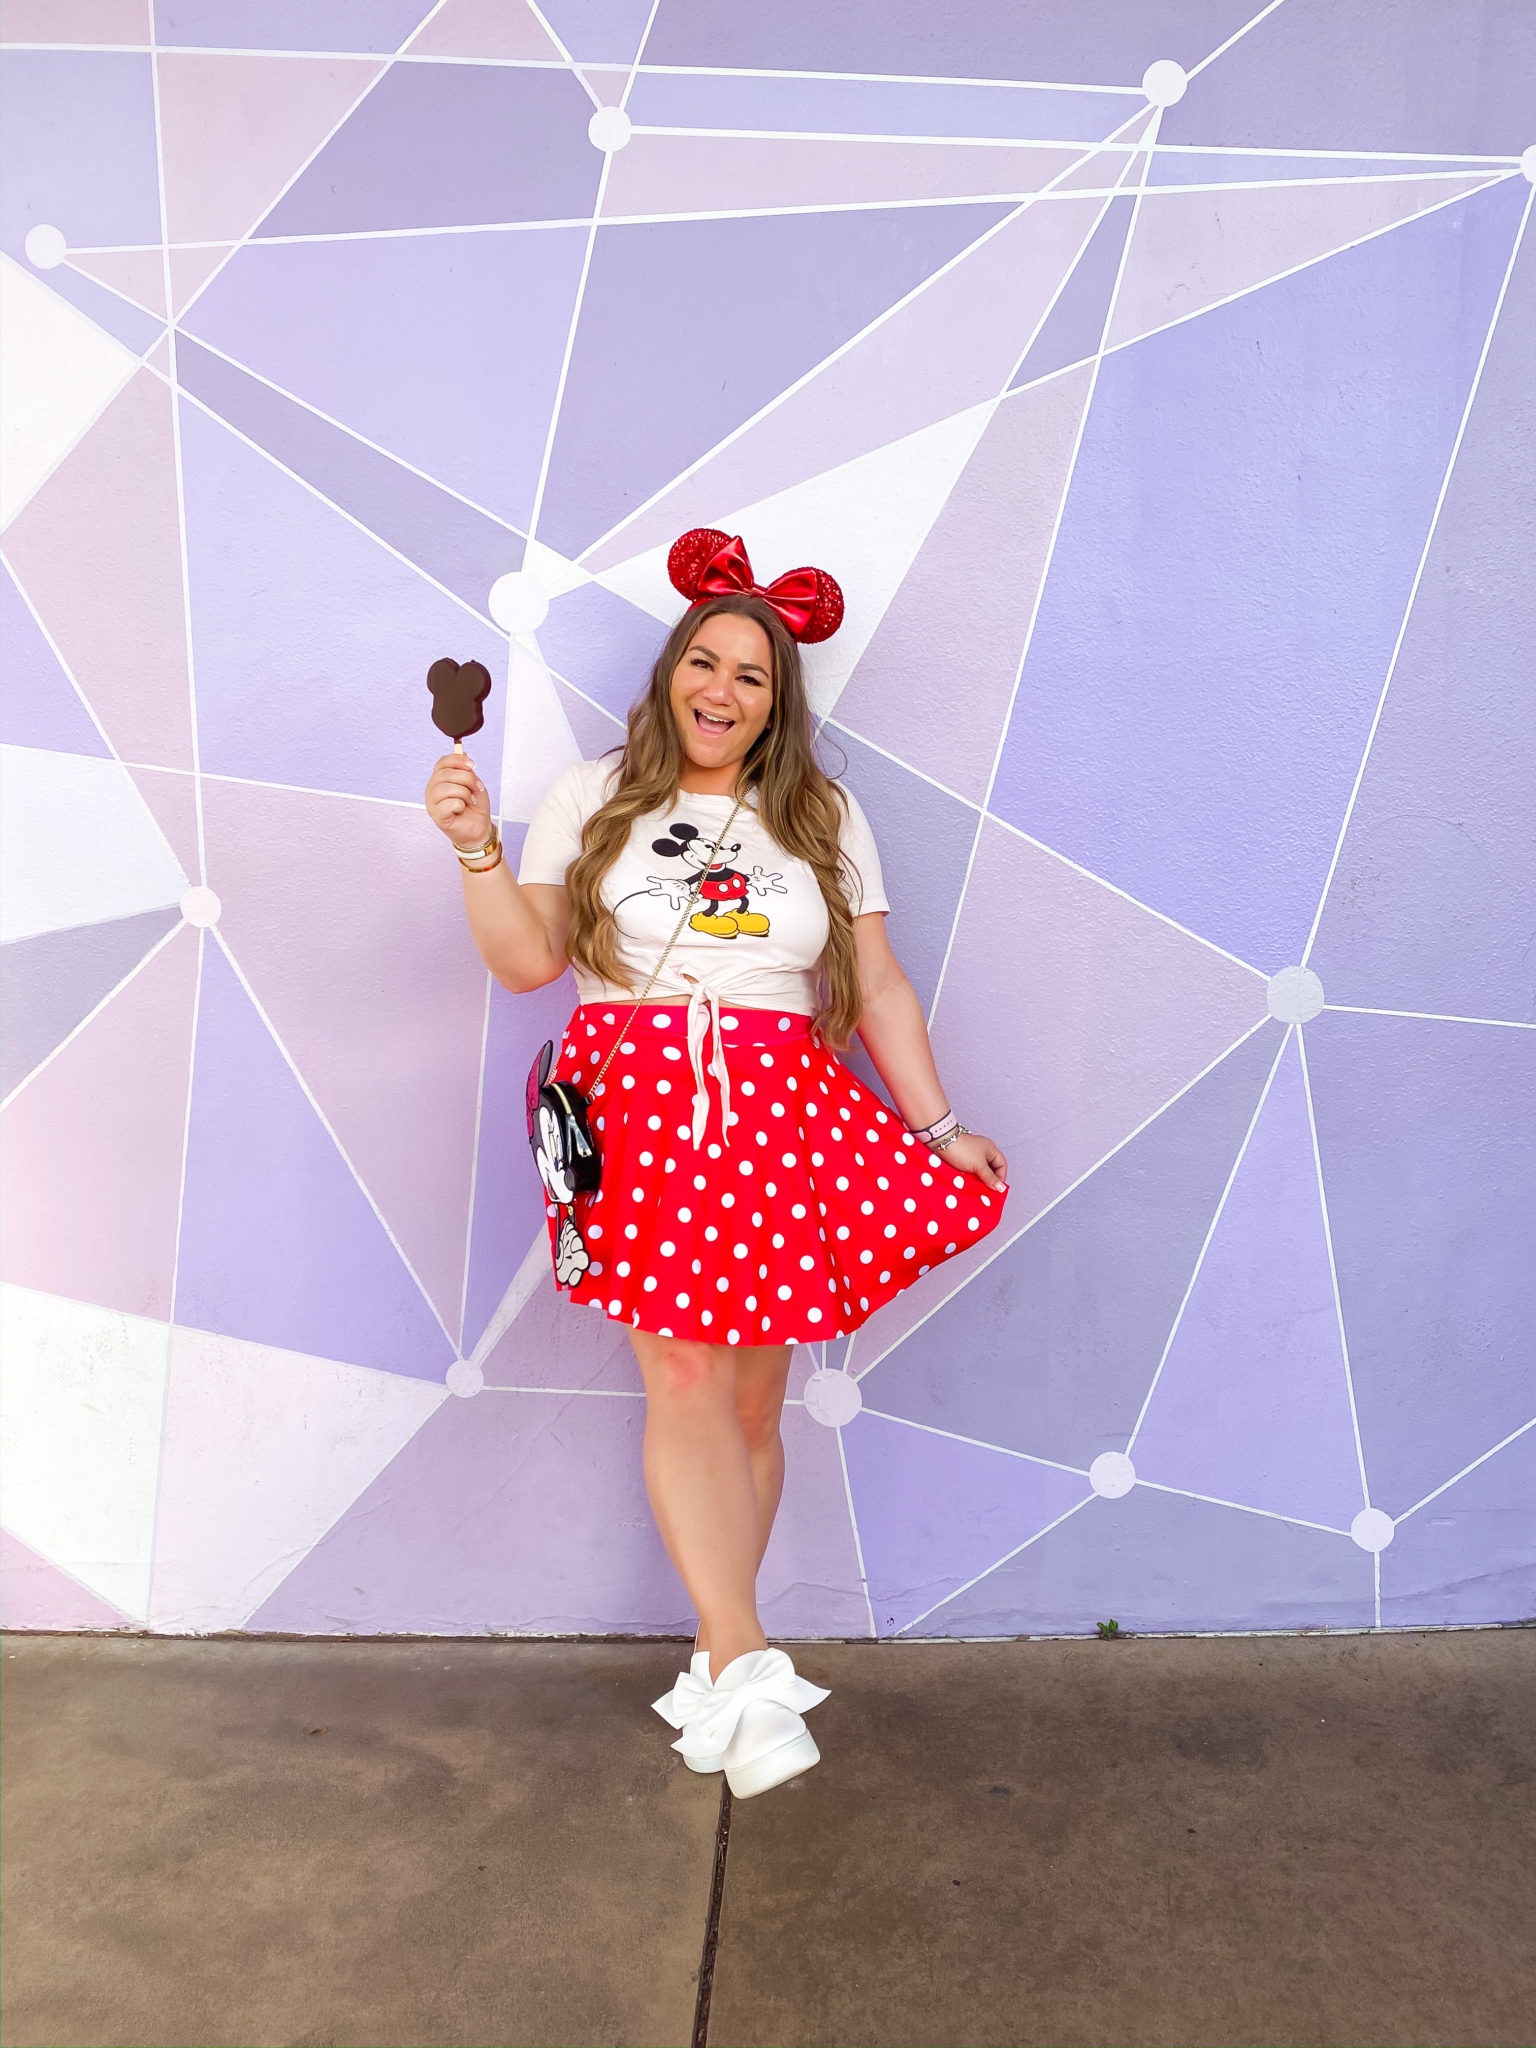 missyonmadison, missyonmadison blog, la blogger, walt disney world, disney outfit, disney outfit ideas, disney bound, what I wore at disney, polka dot dress, polka dot outfits, disneycreators trip, disney outfit inspo, style ideas for disney, style goals for disney, disney fashion, shop disney, hot topic, boxlunch, disney world looks,